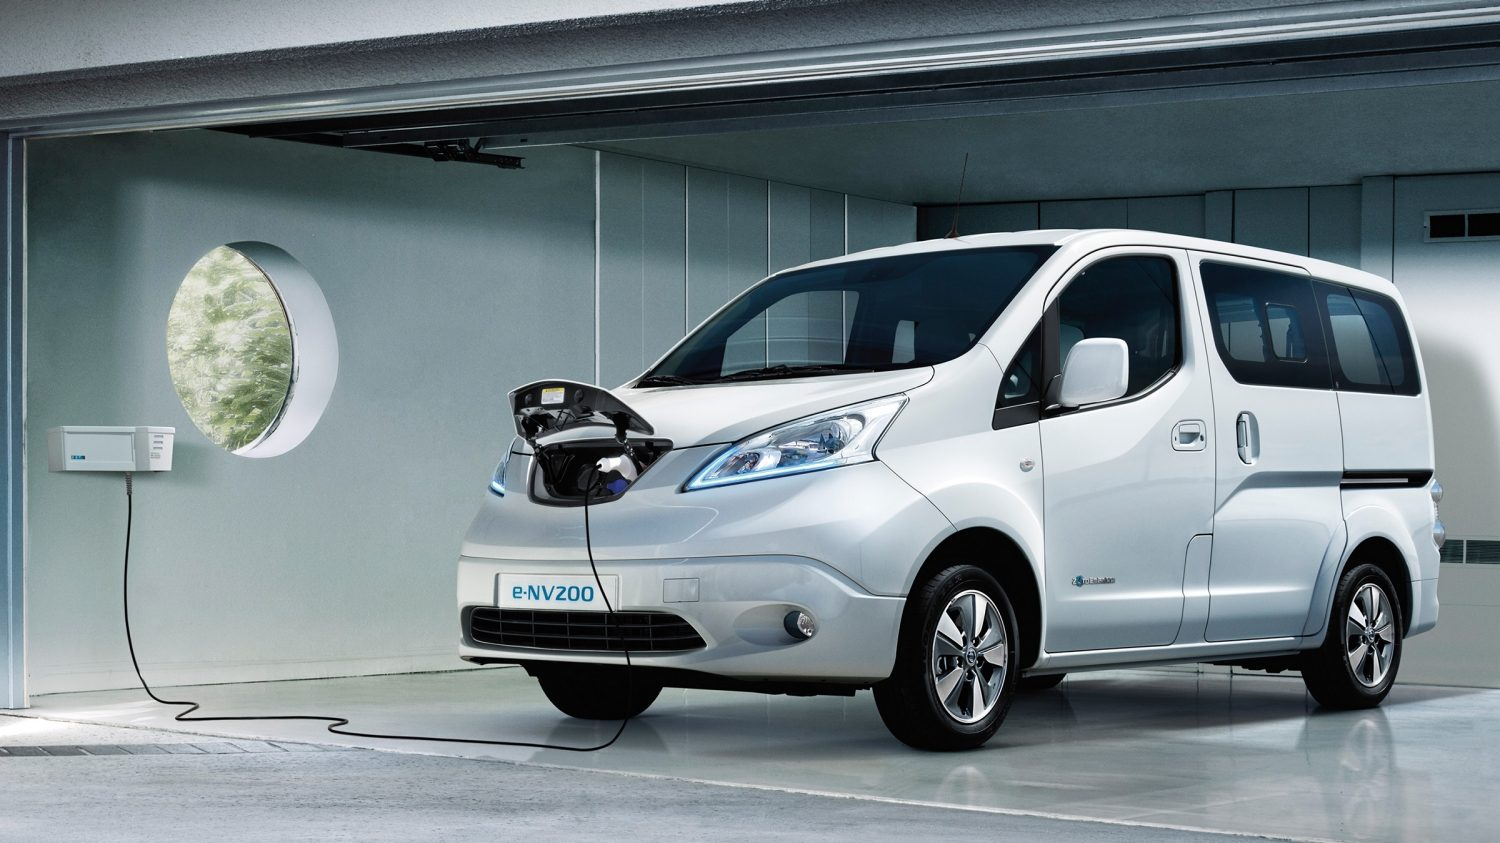 Nya Nissan e-NV200 Evalia laddning med wallbox